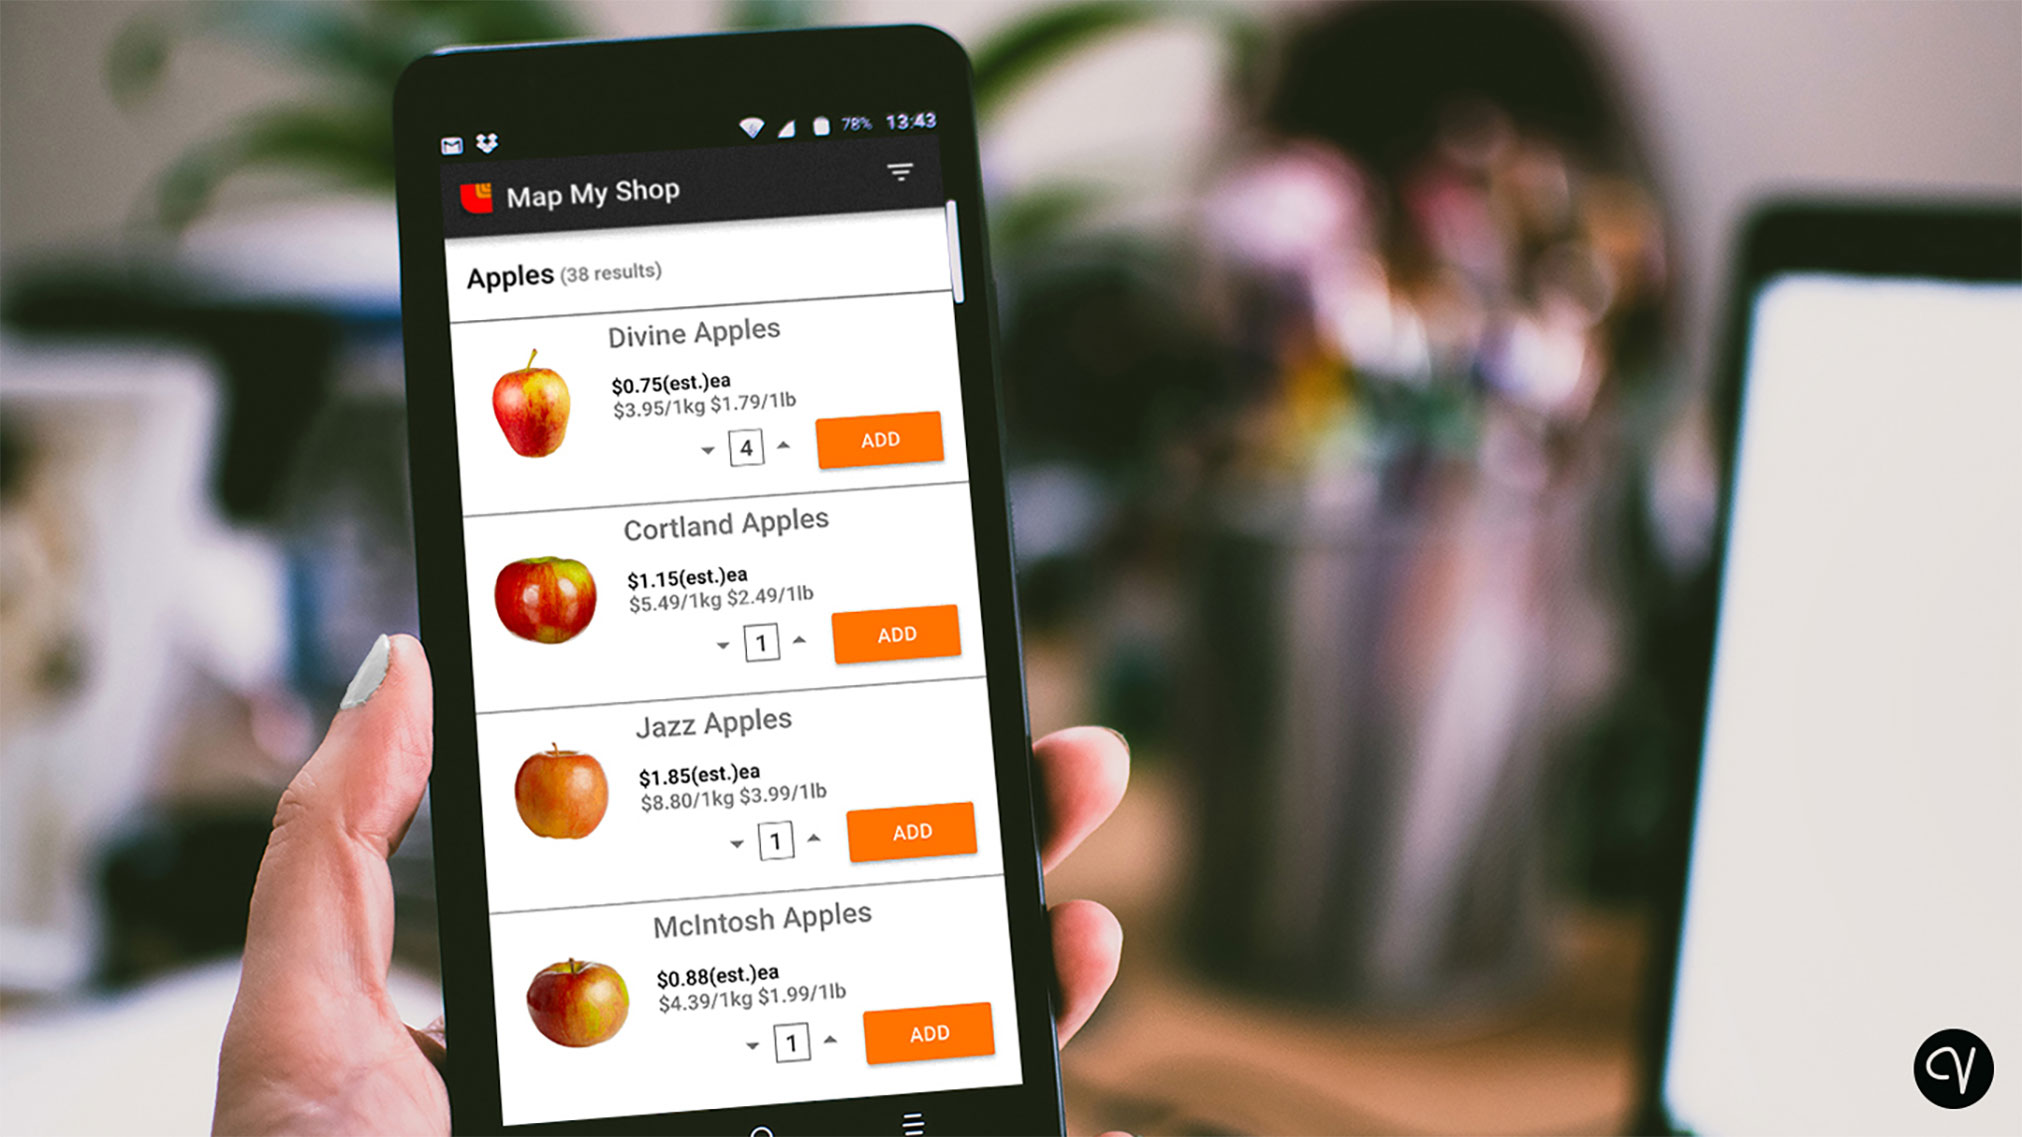 User research, 5G, and AR come together in this app made to improve the in-store shopping experience at Loblaws with real-time stock levels and a personalized shopping map.